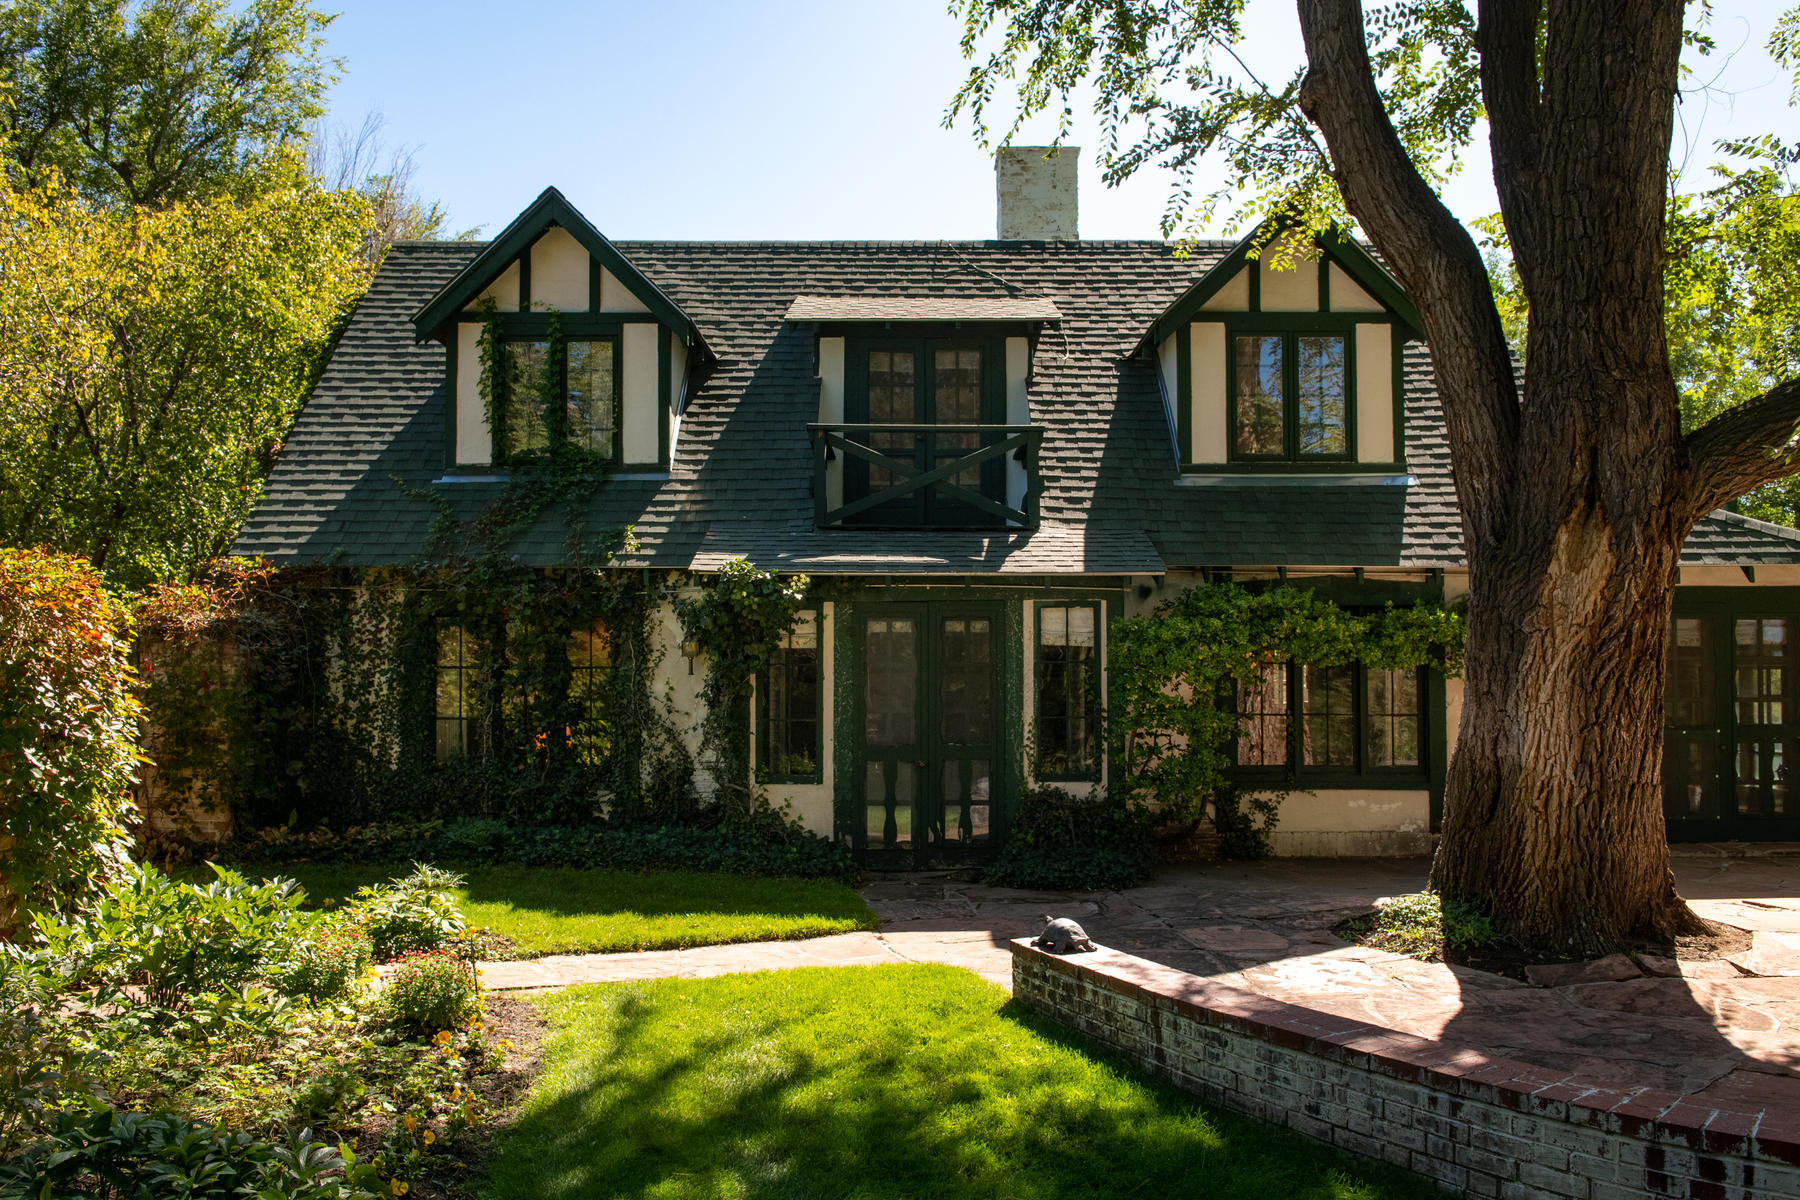 Single Family Homes for Sale at Private & Charming Country Home Surrounded by Greenwood Village's Open Space 4500 E Belleview Avenue Greenwood Village, Colorado 80121 United States